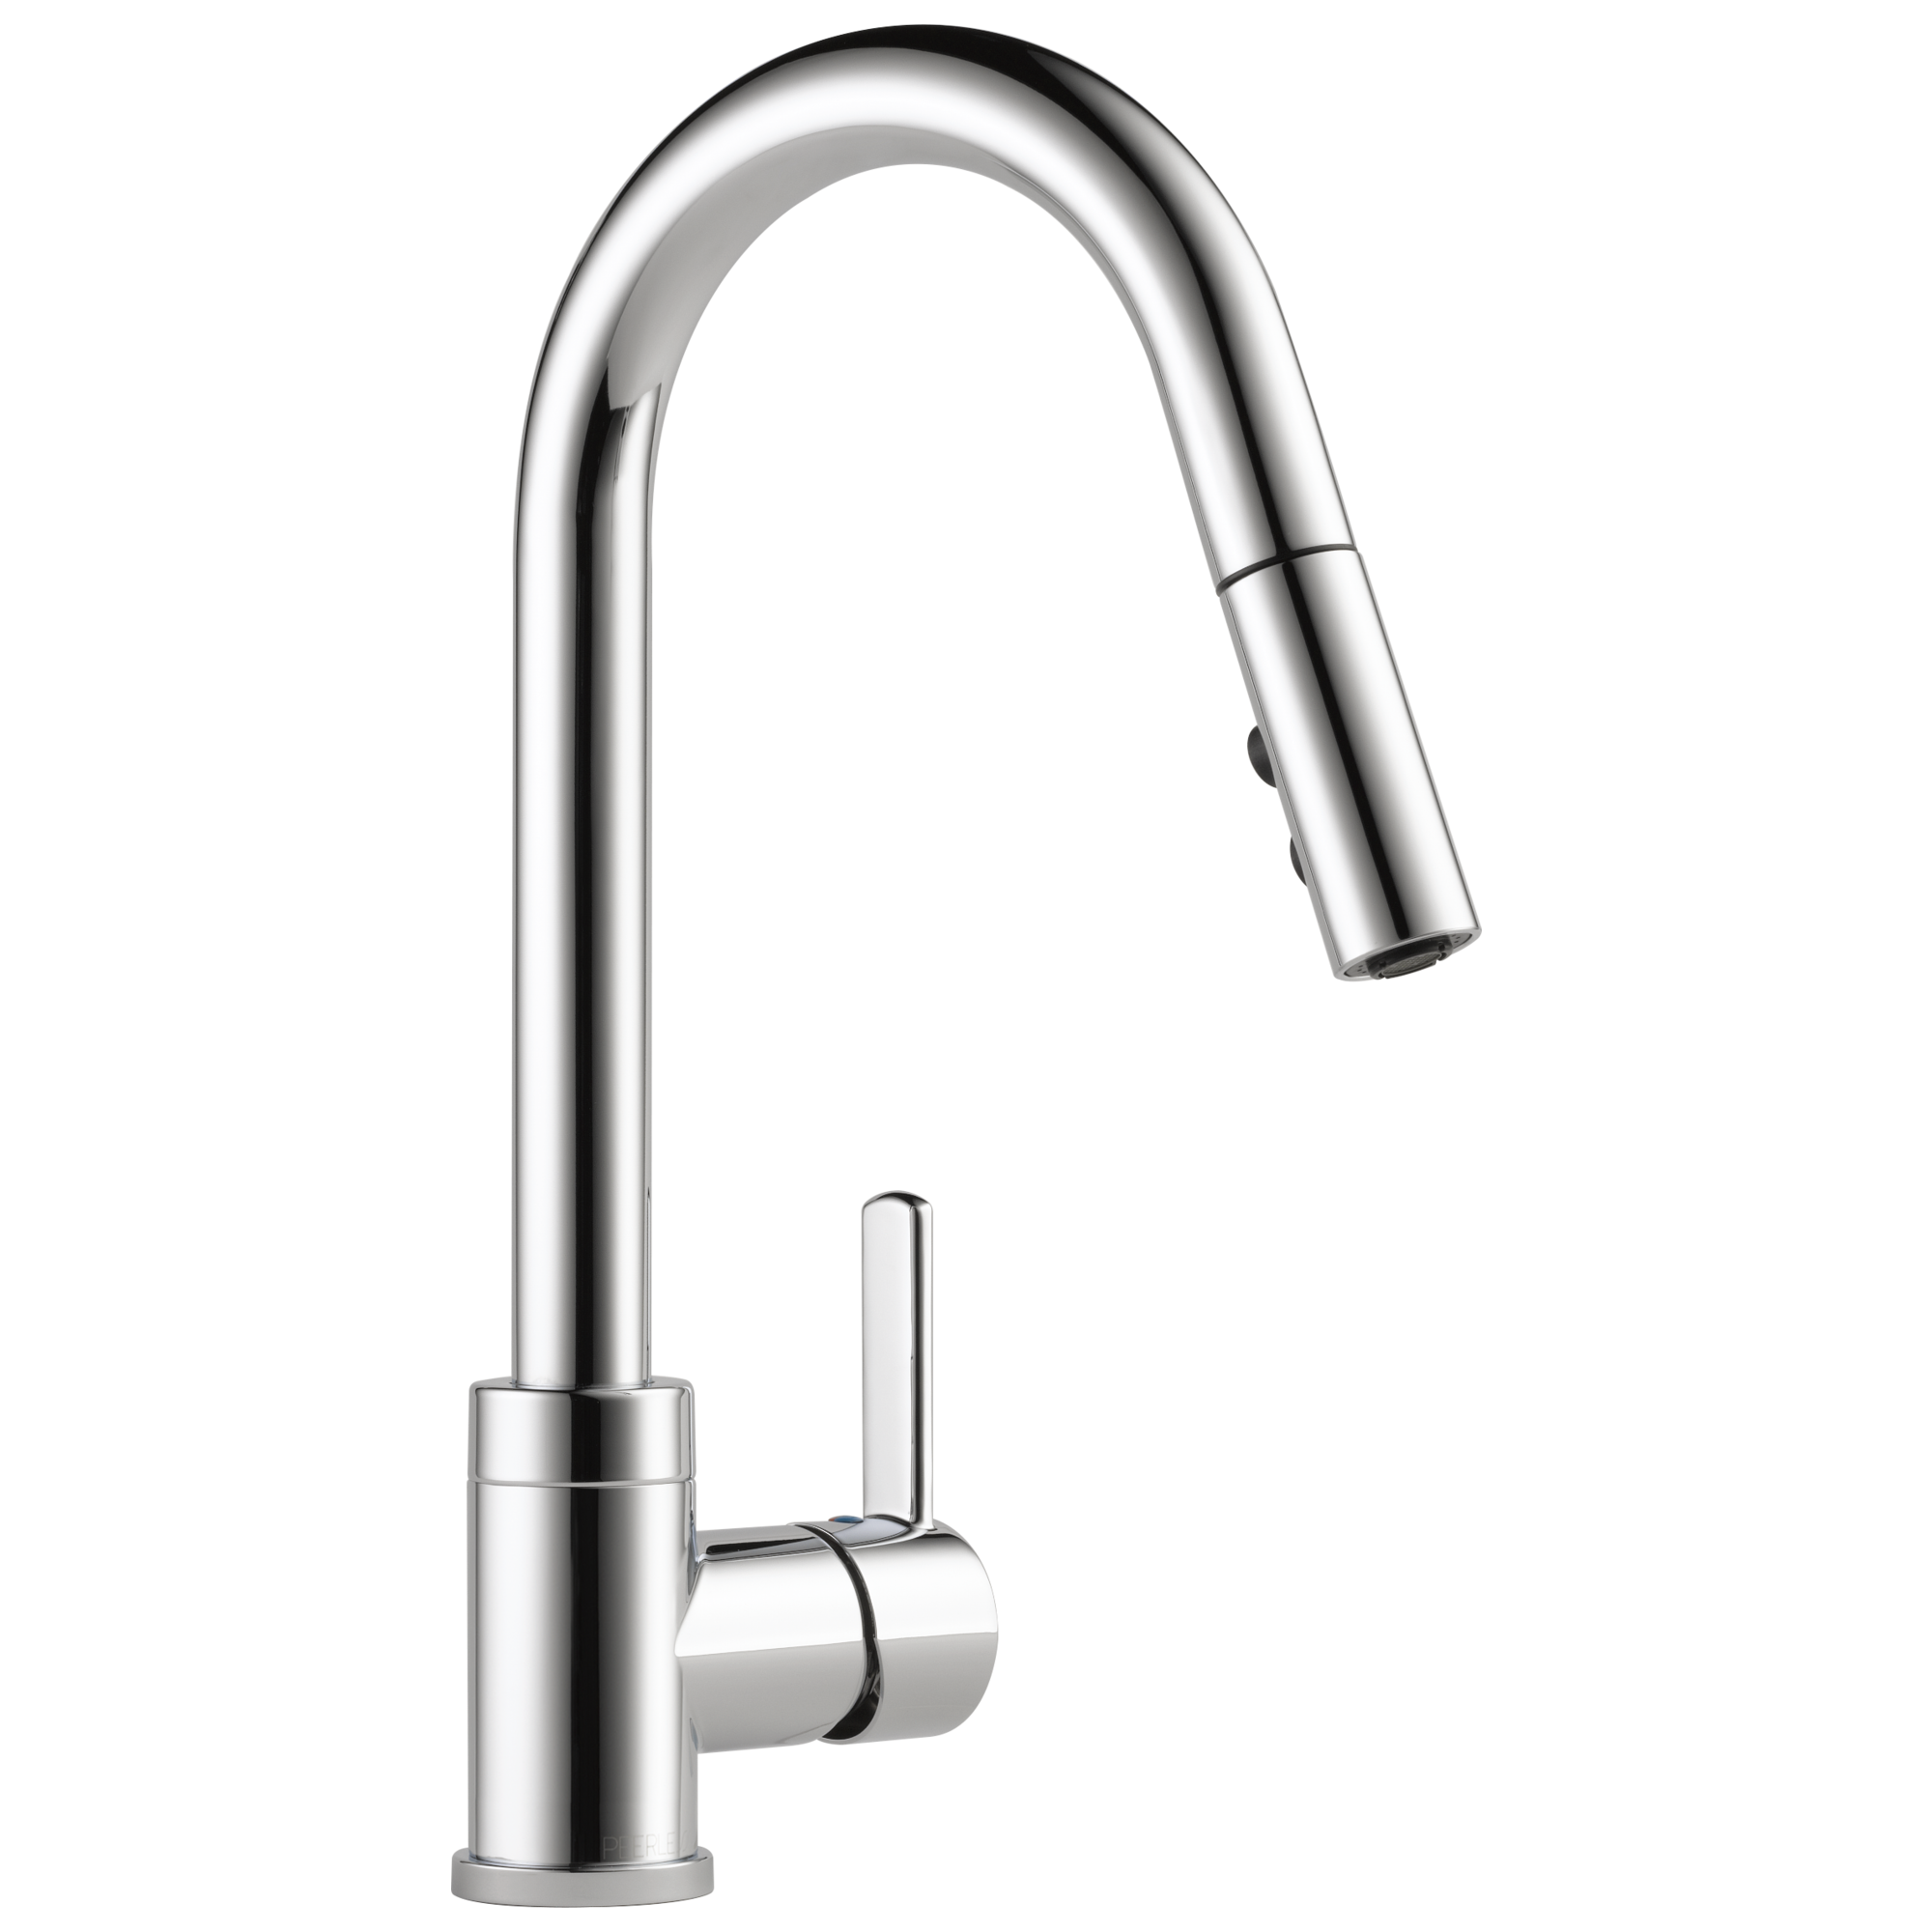 peerless kitchen faucet parts diagram peerless kitchen peerless bathroom faucets 187 bathroom design ideas